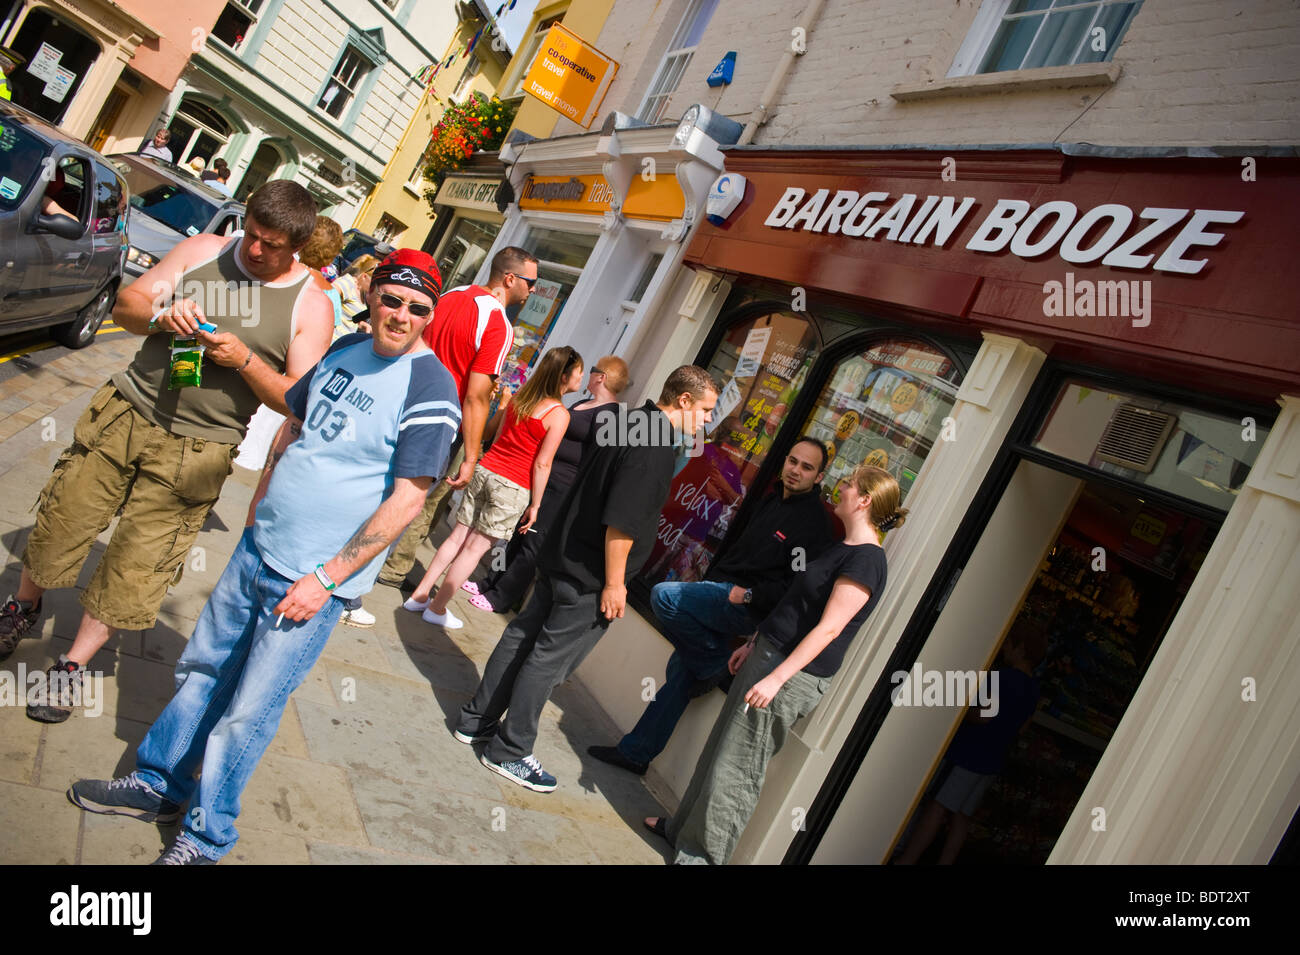 Visitors to Brecon Jazz Festival 2009 standing around outside outside the Bargain Booze shop - Stock Image